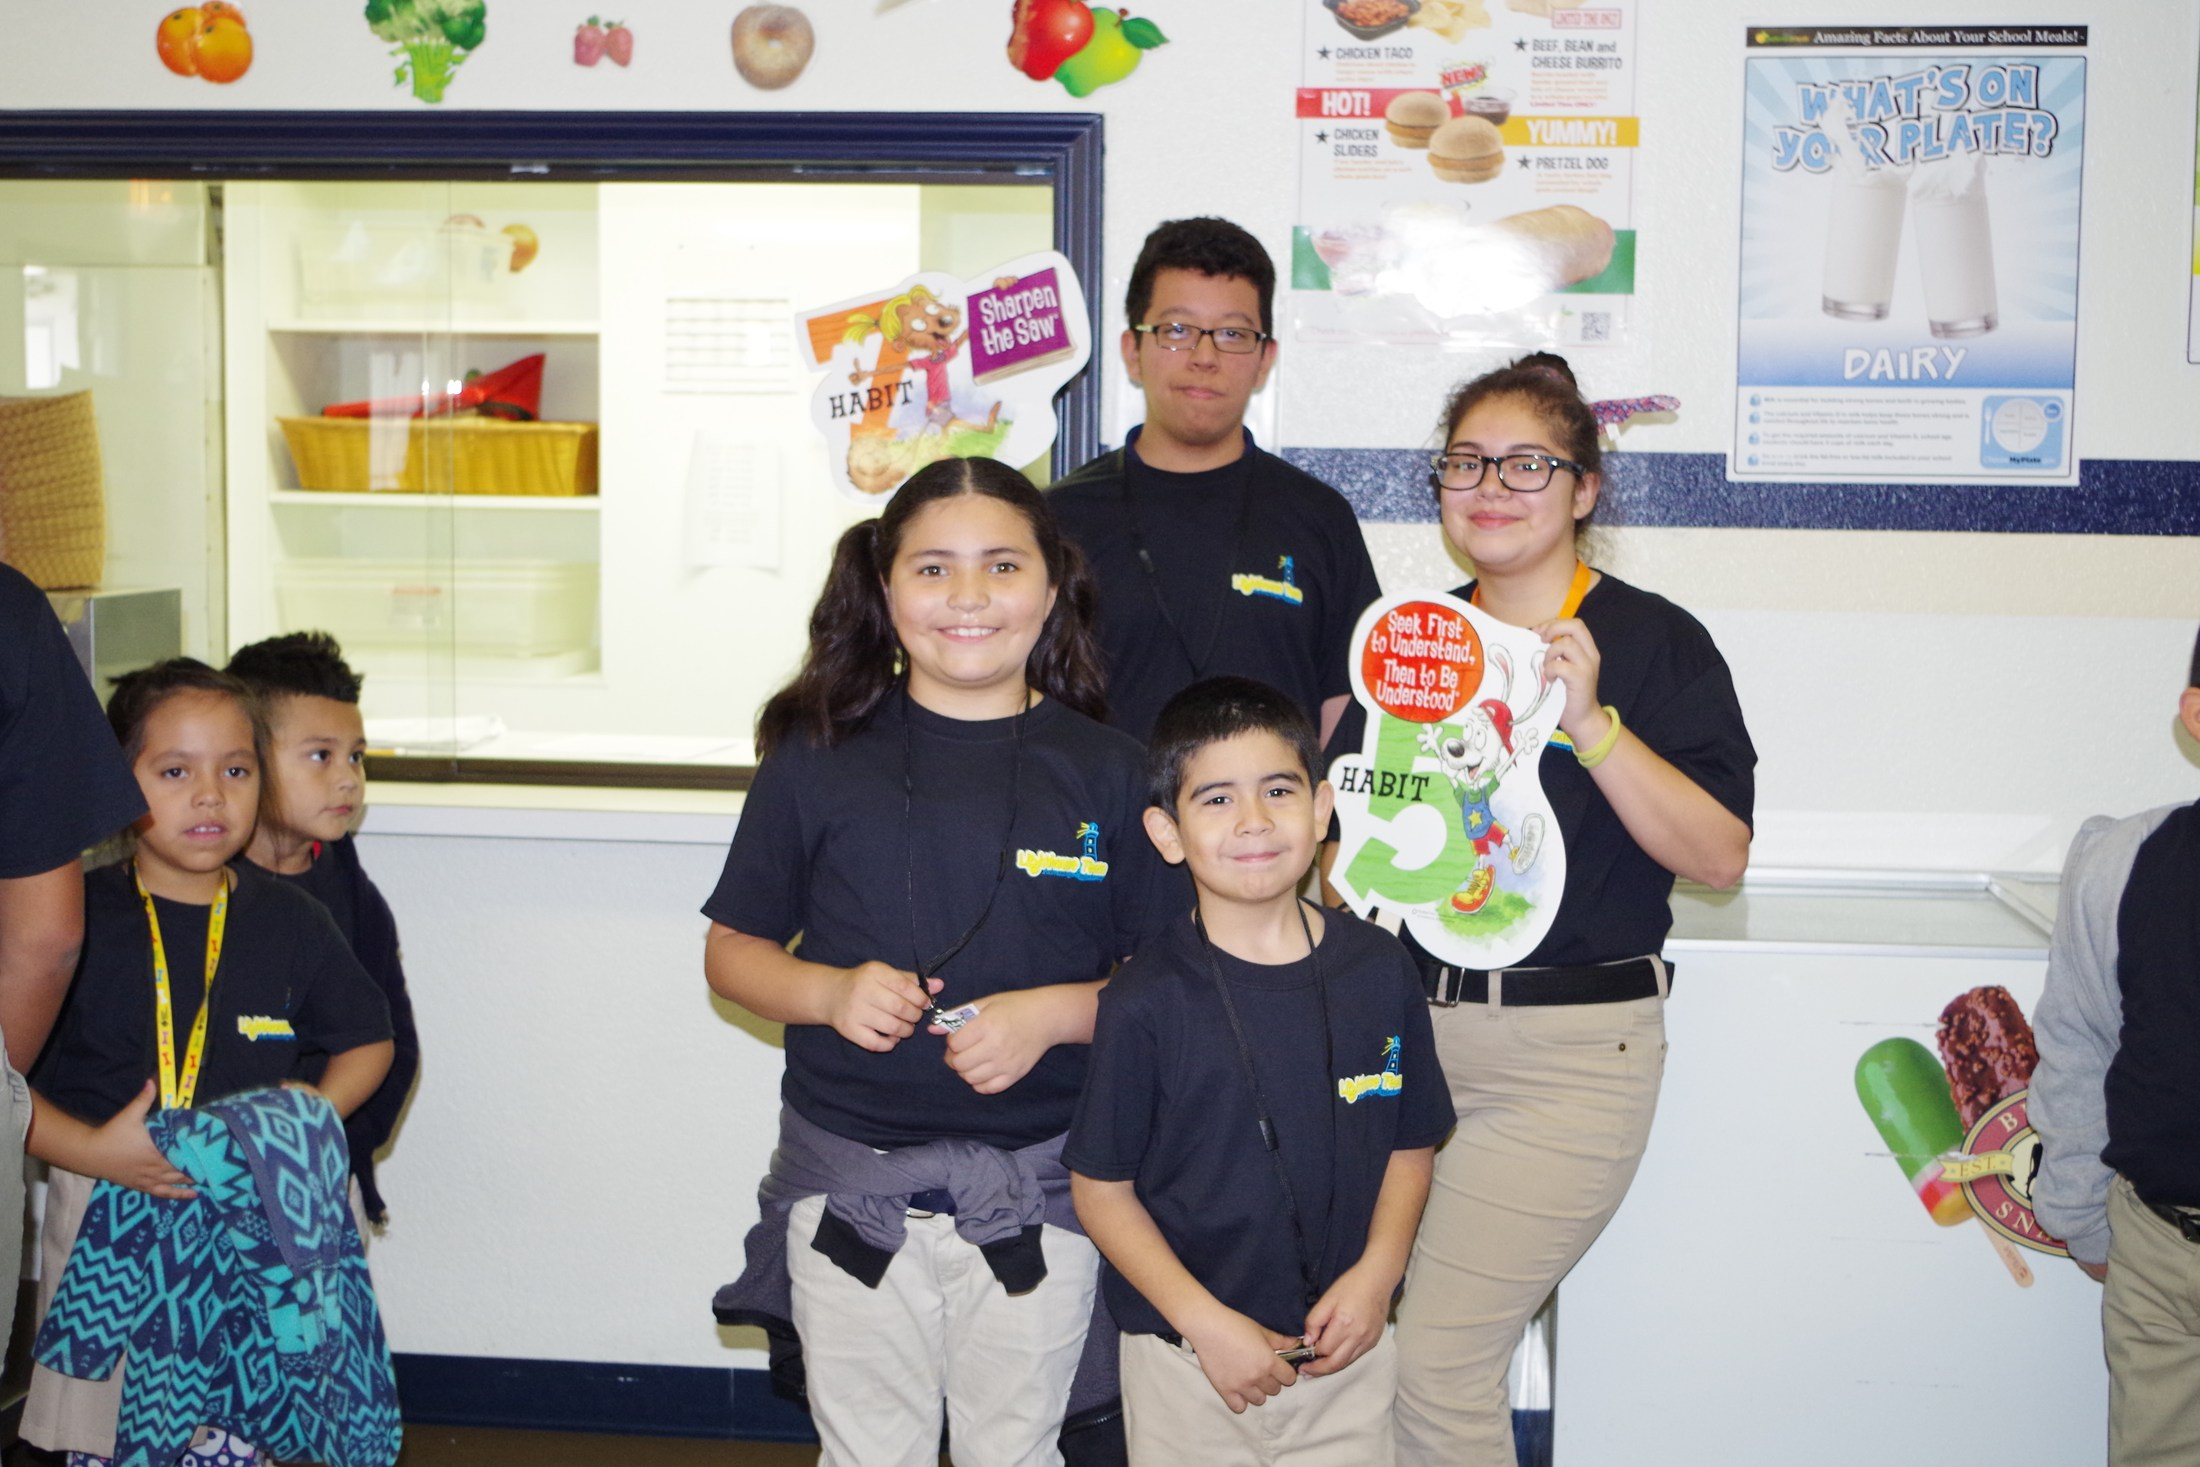 Students posing with 7 habits poster